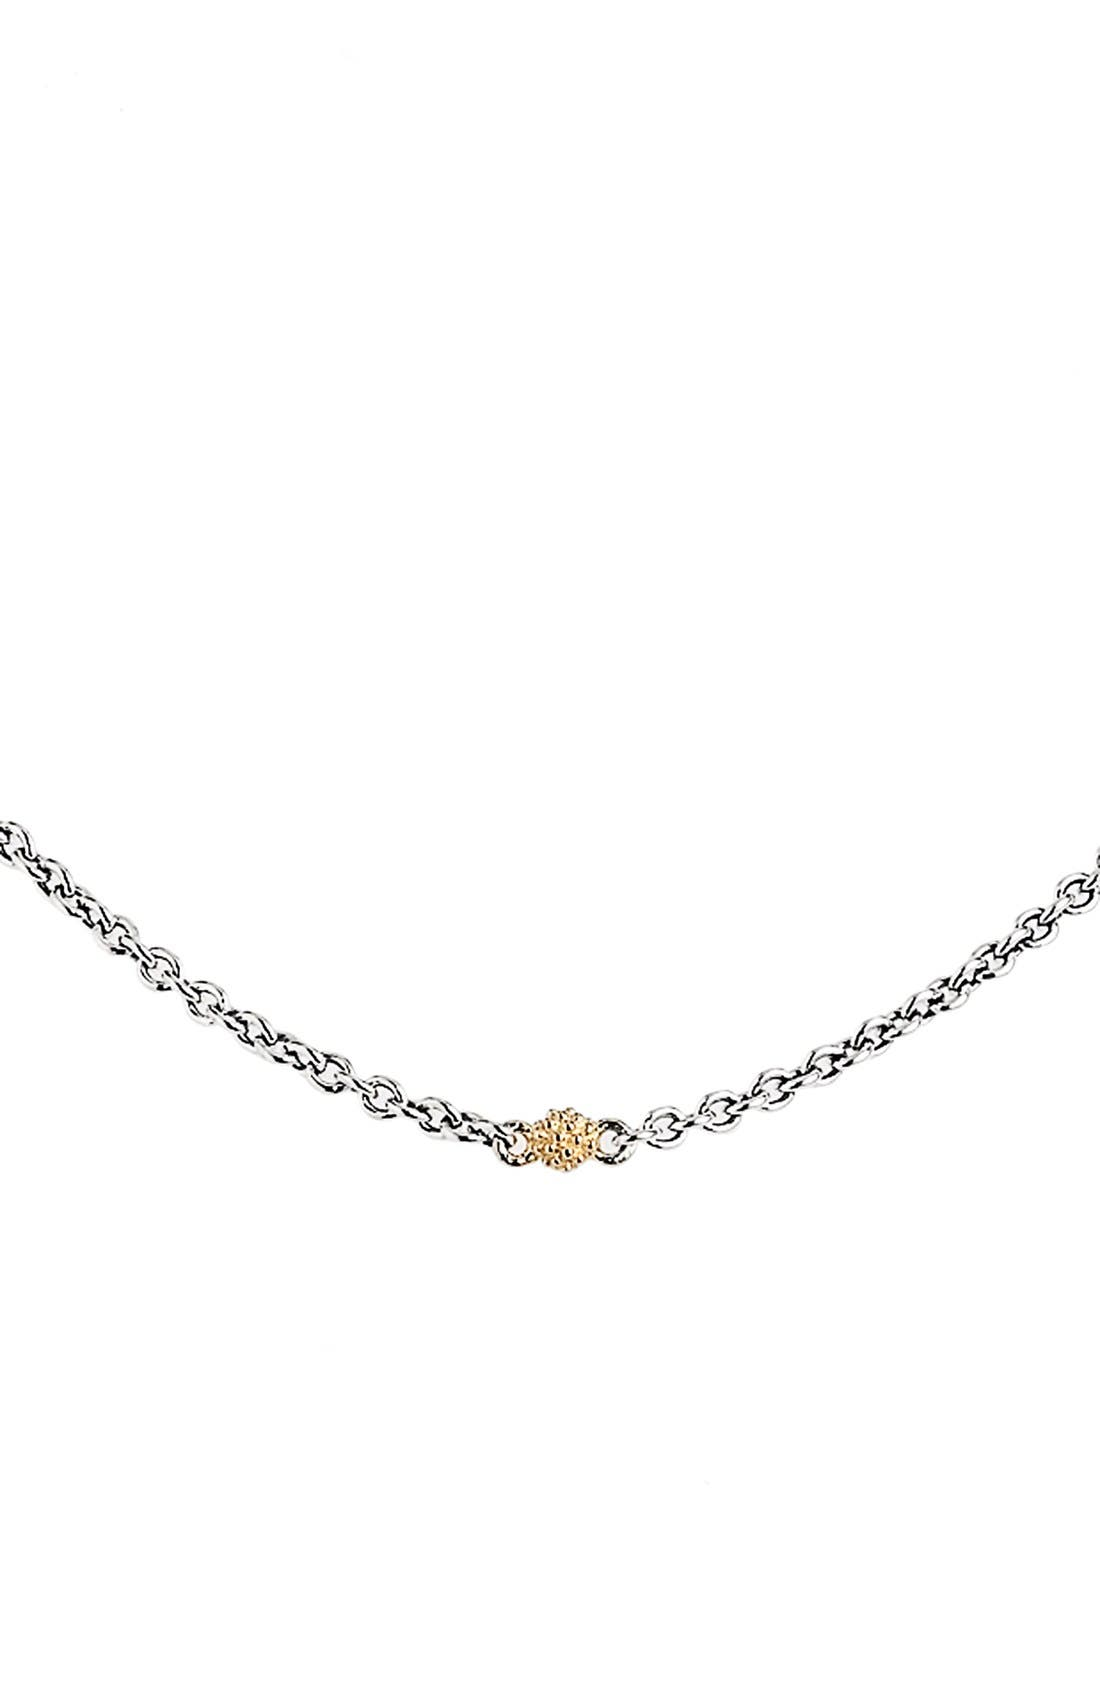 Main Image - LAGOS Caviar Station Two Tone Necklace